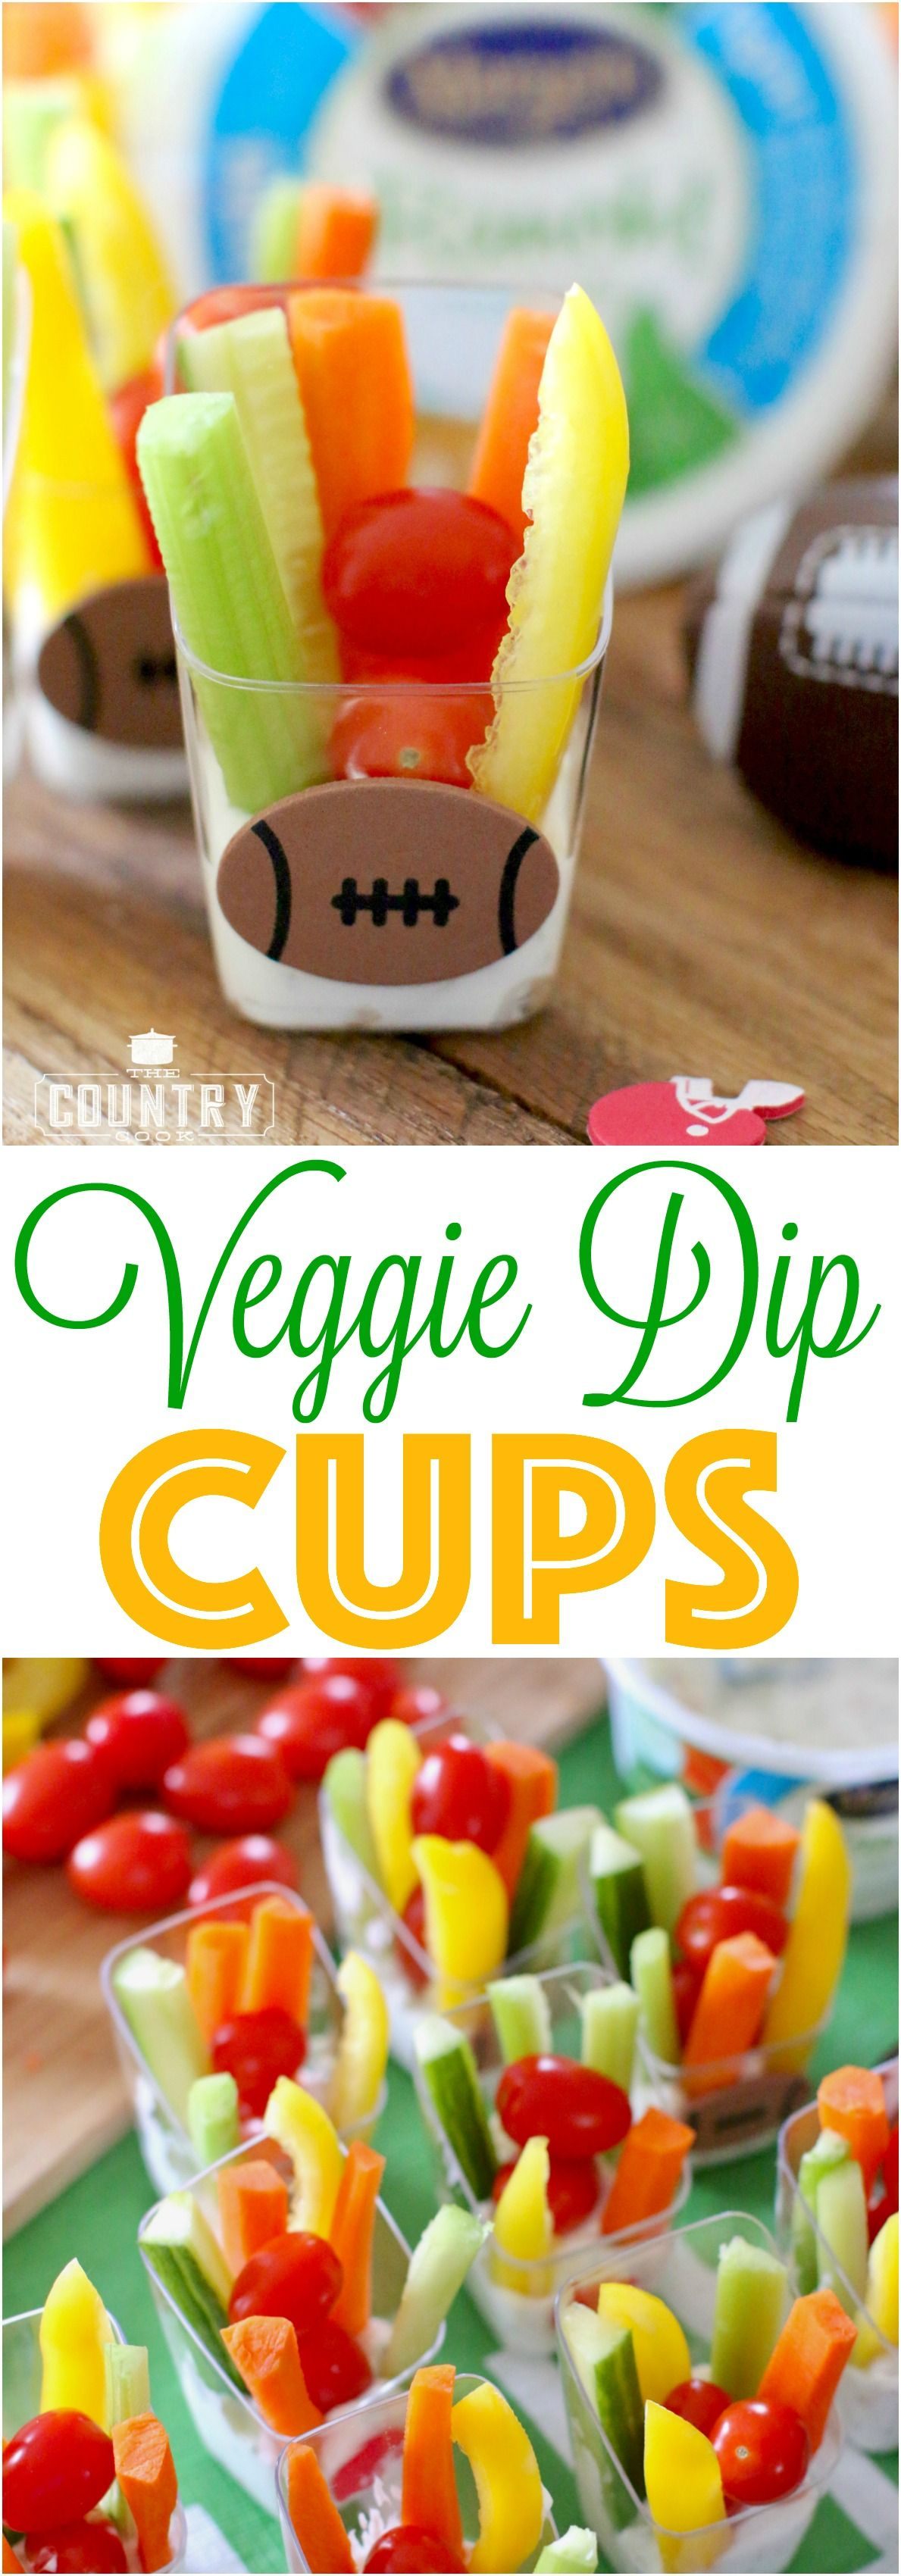 Veggie Dip Cups recipe from The Country Cook. Perfect for tailgating and big game day!